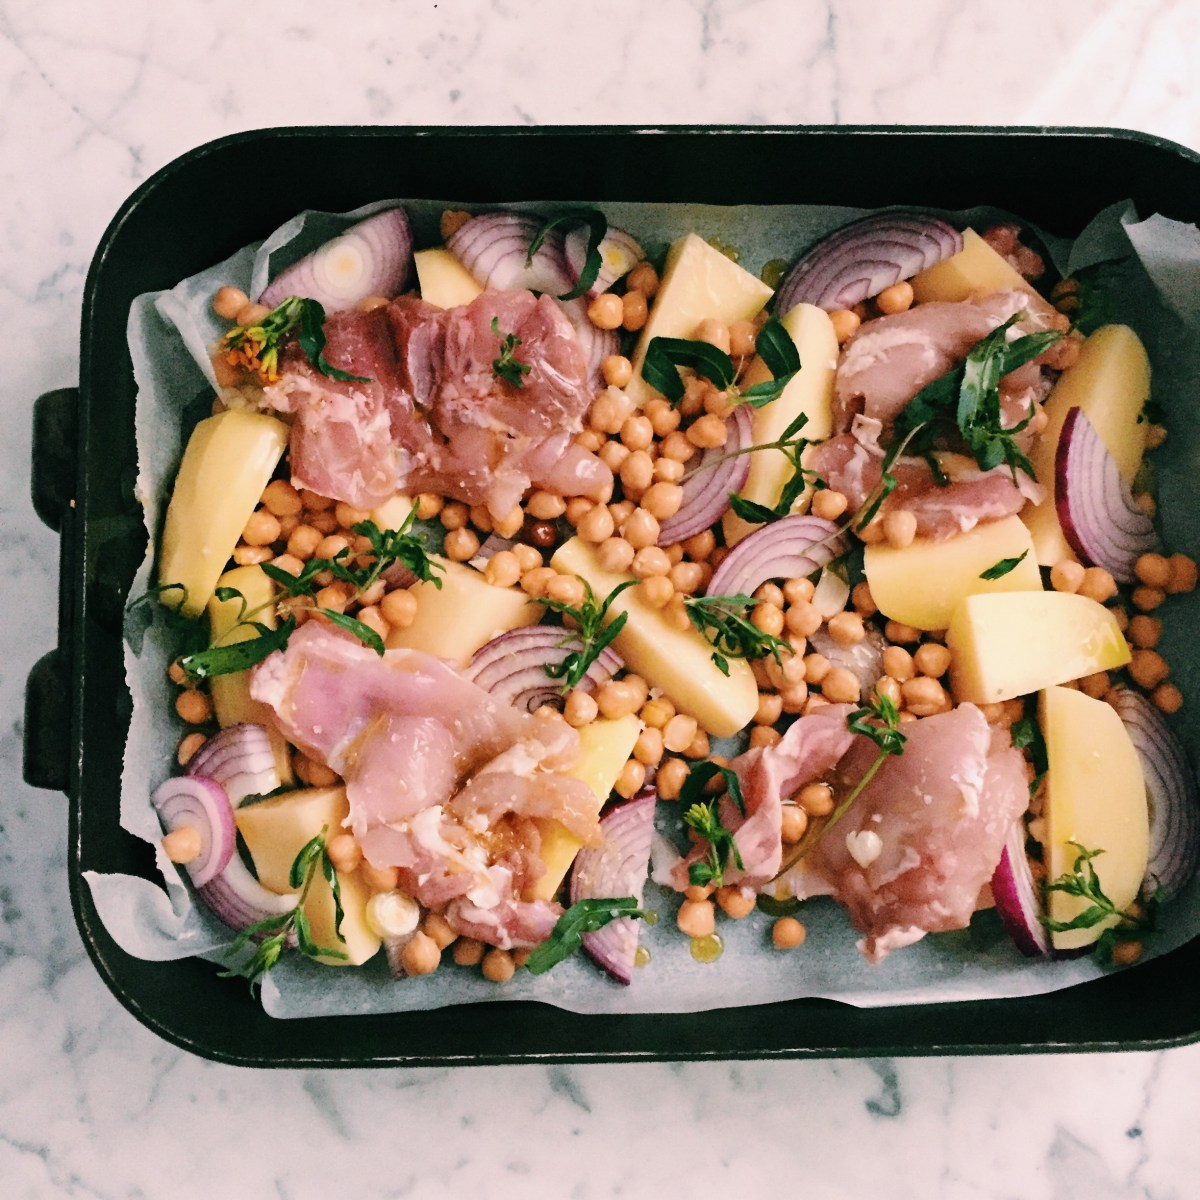 Recipe: Chicken and chick pea 'sheet-pan' dinner